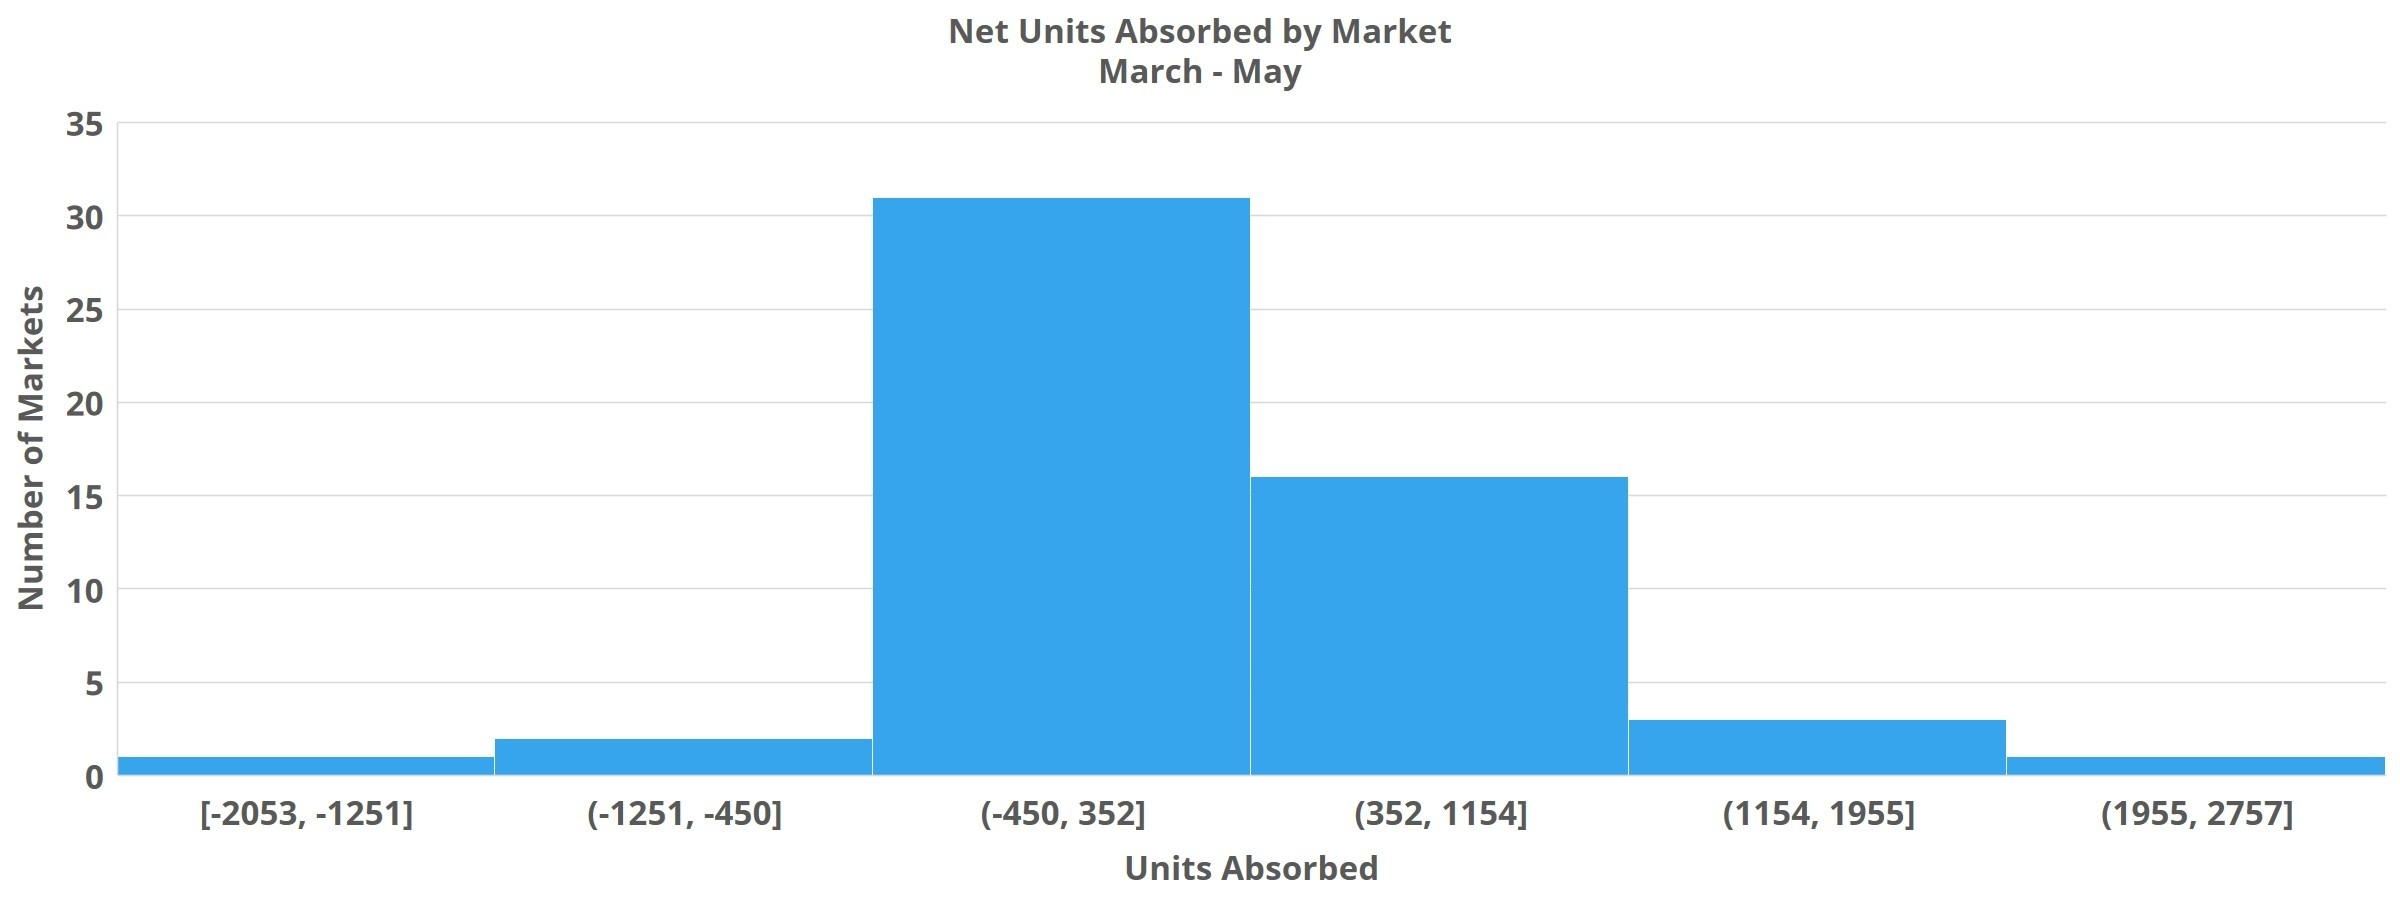 Net Units Absorbed by Market March - May